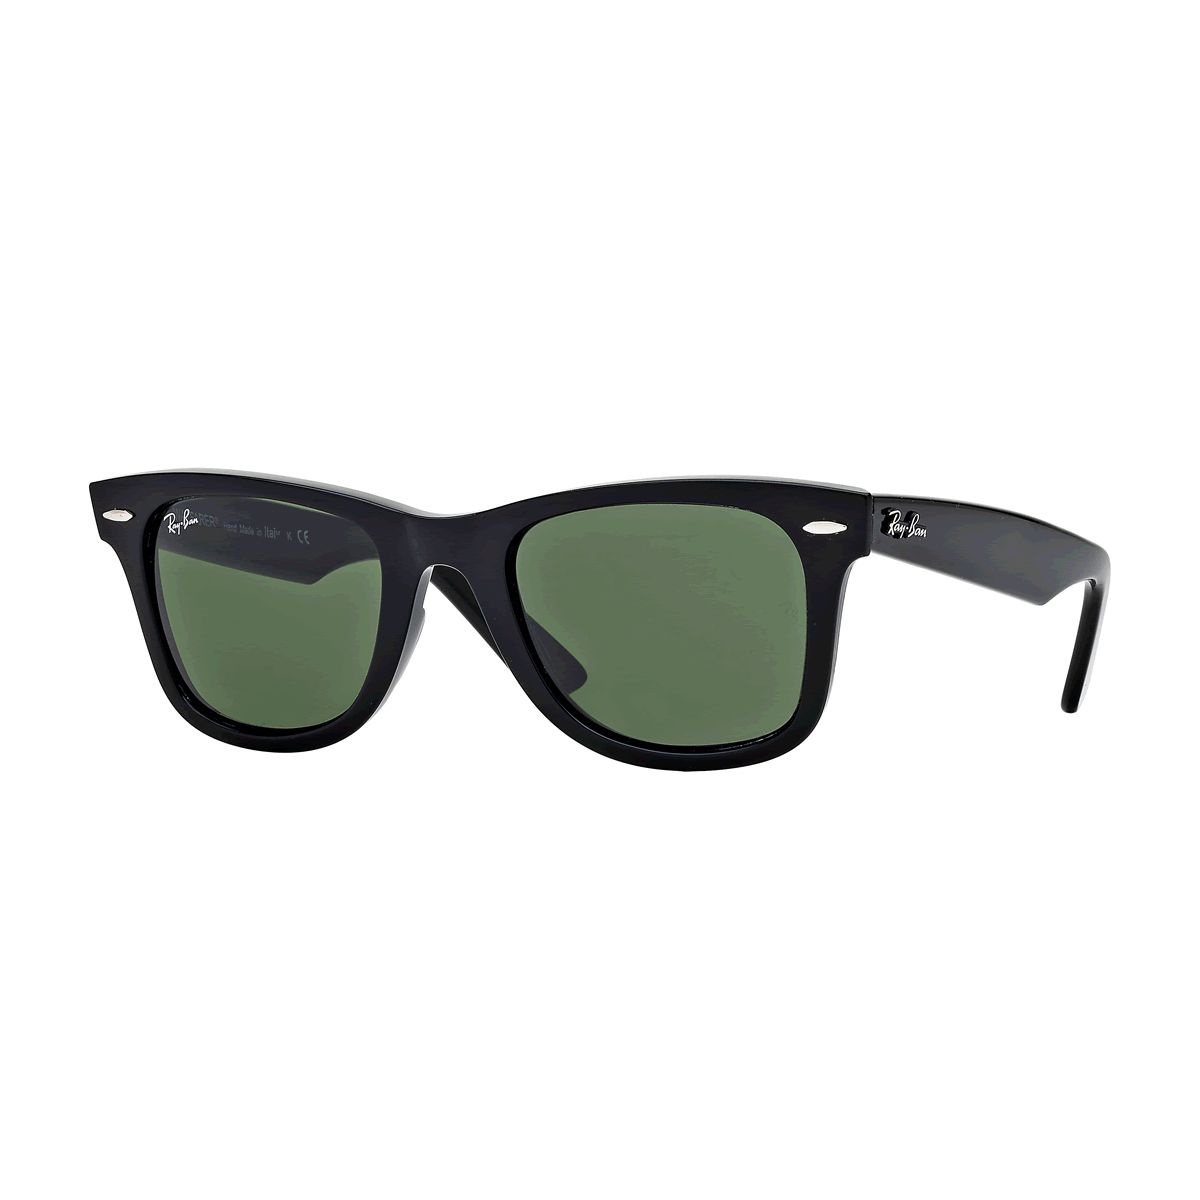 918495ac771 Ray-Ban Sunglasses - Mens   Womens Ray-Bans - Macy s